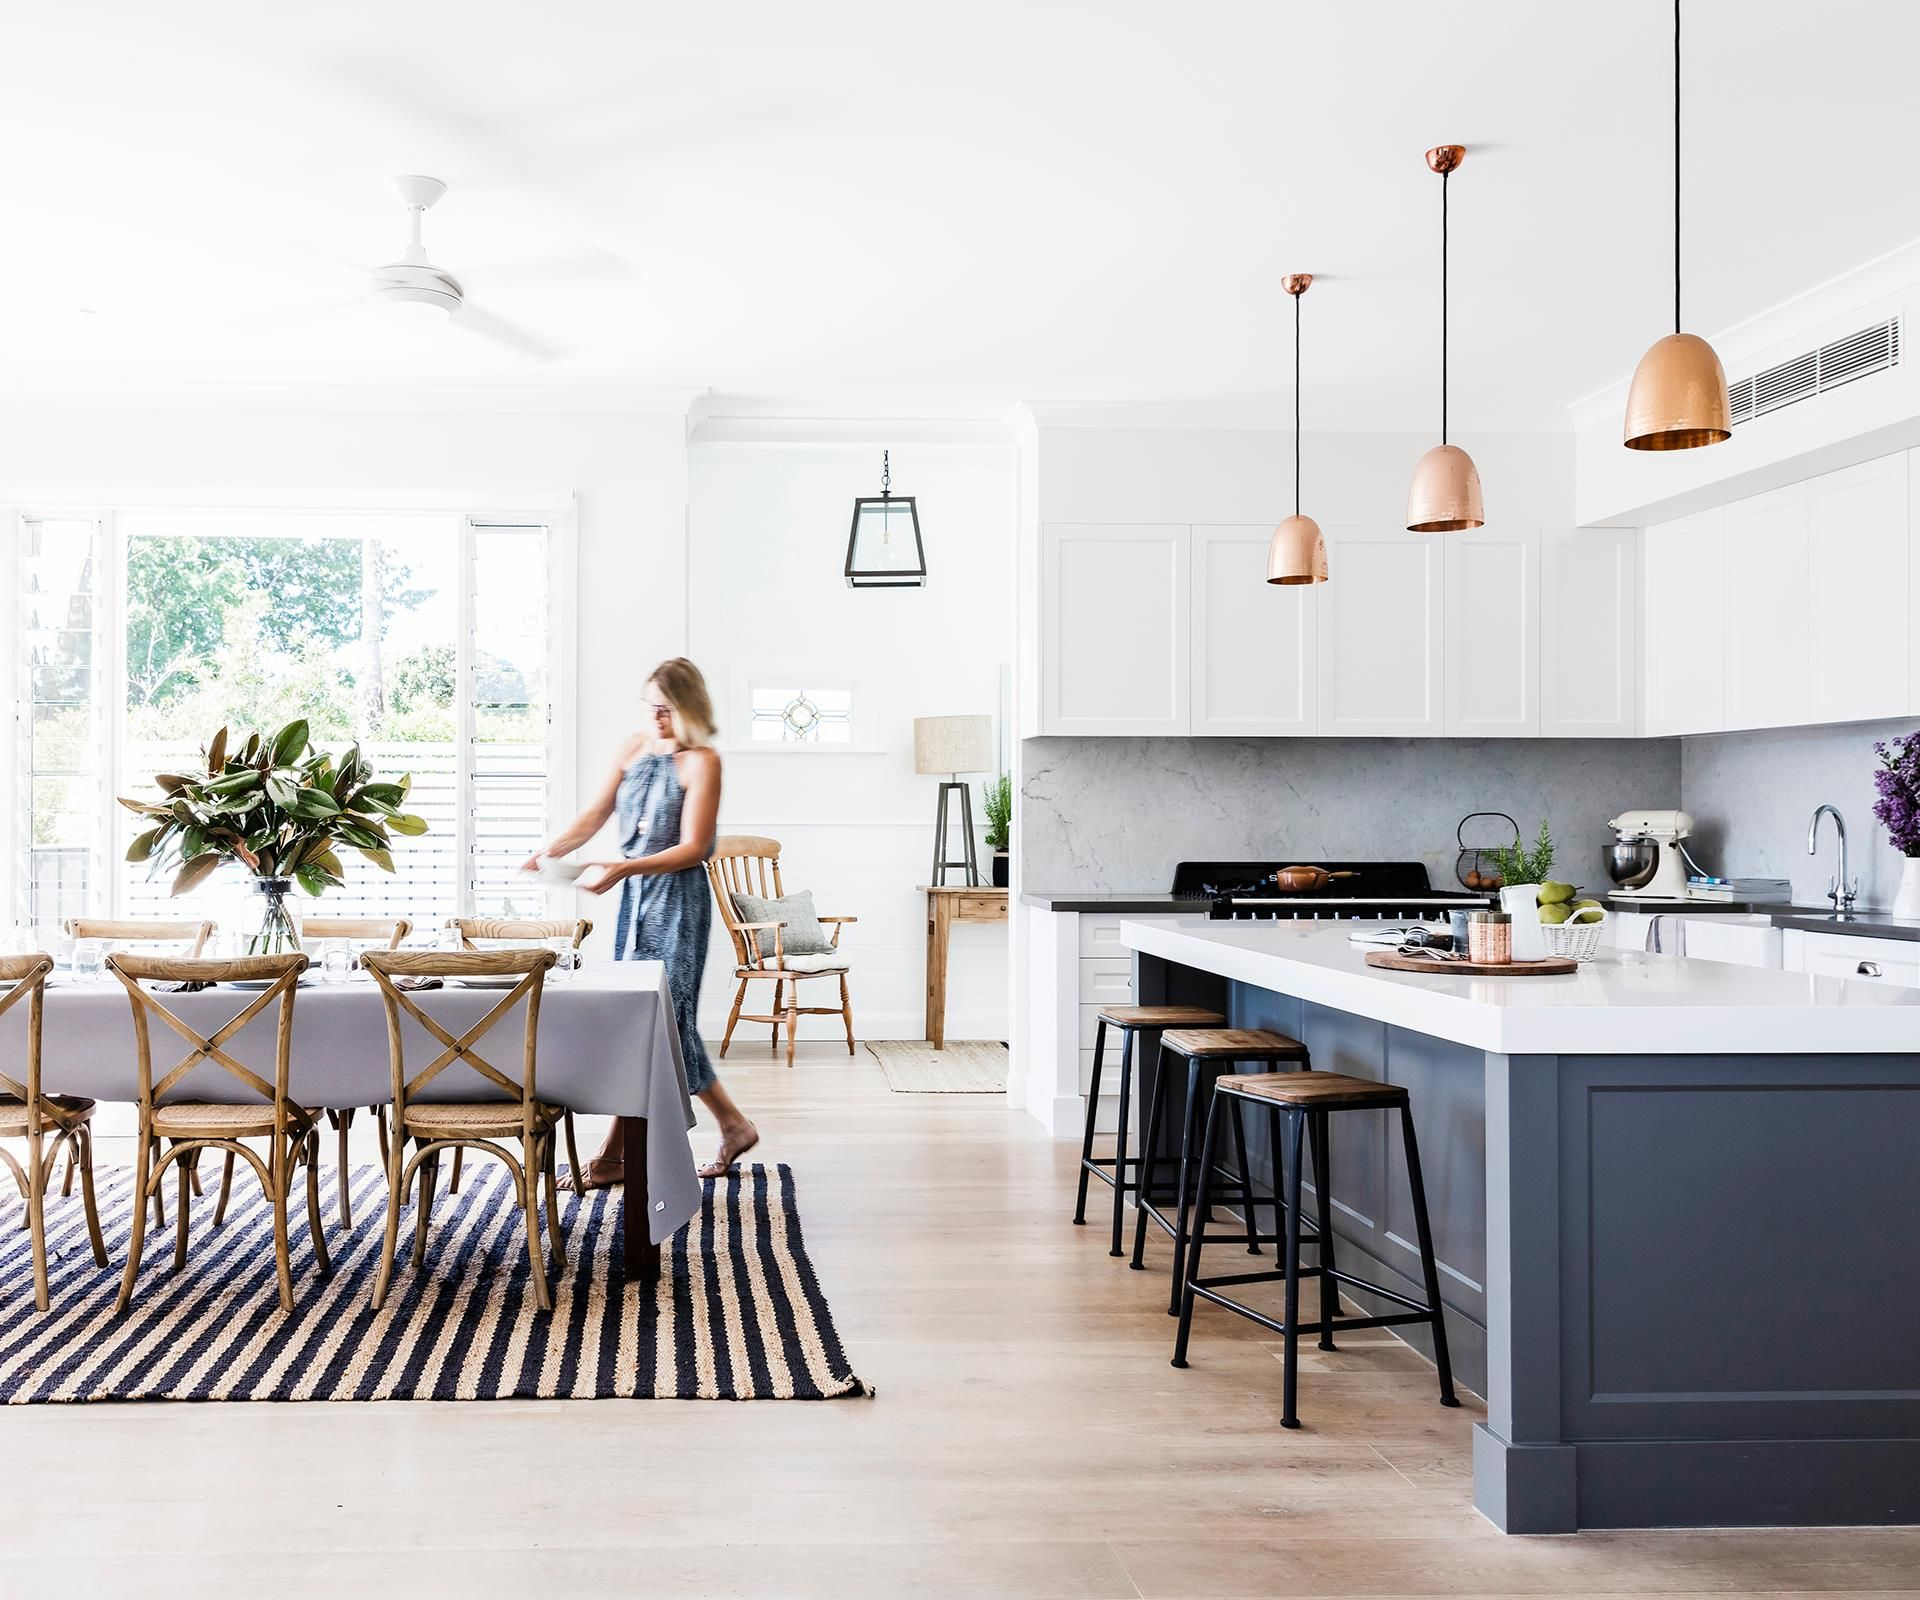 Dining Kitchen Oz Okinawa: Serial Renovators Triumph With New England-inspired Home